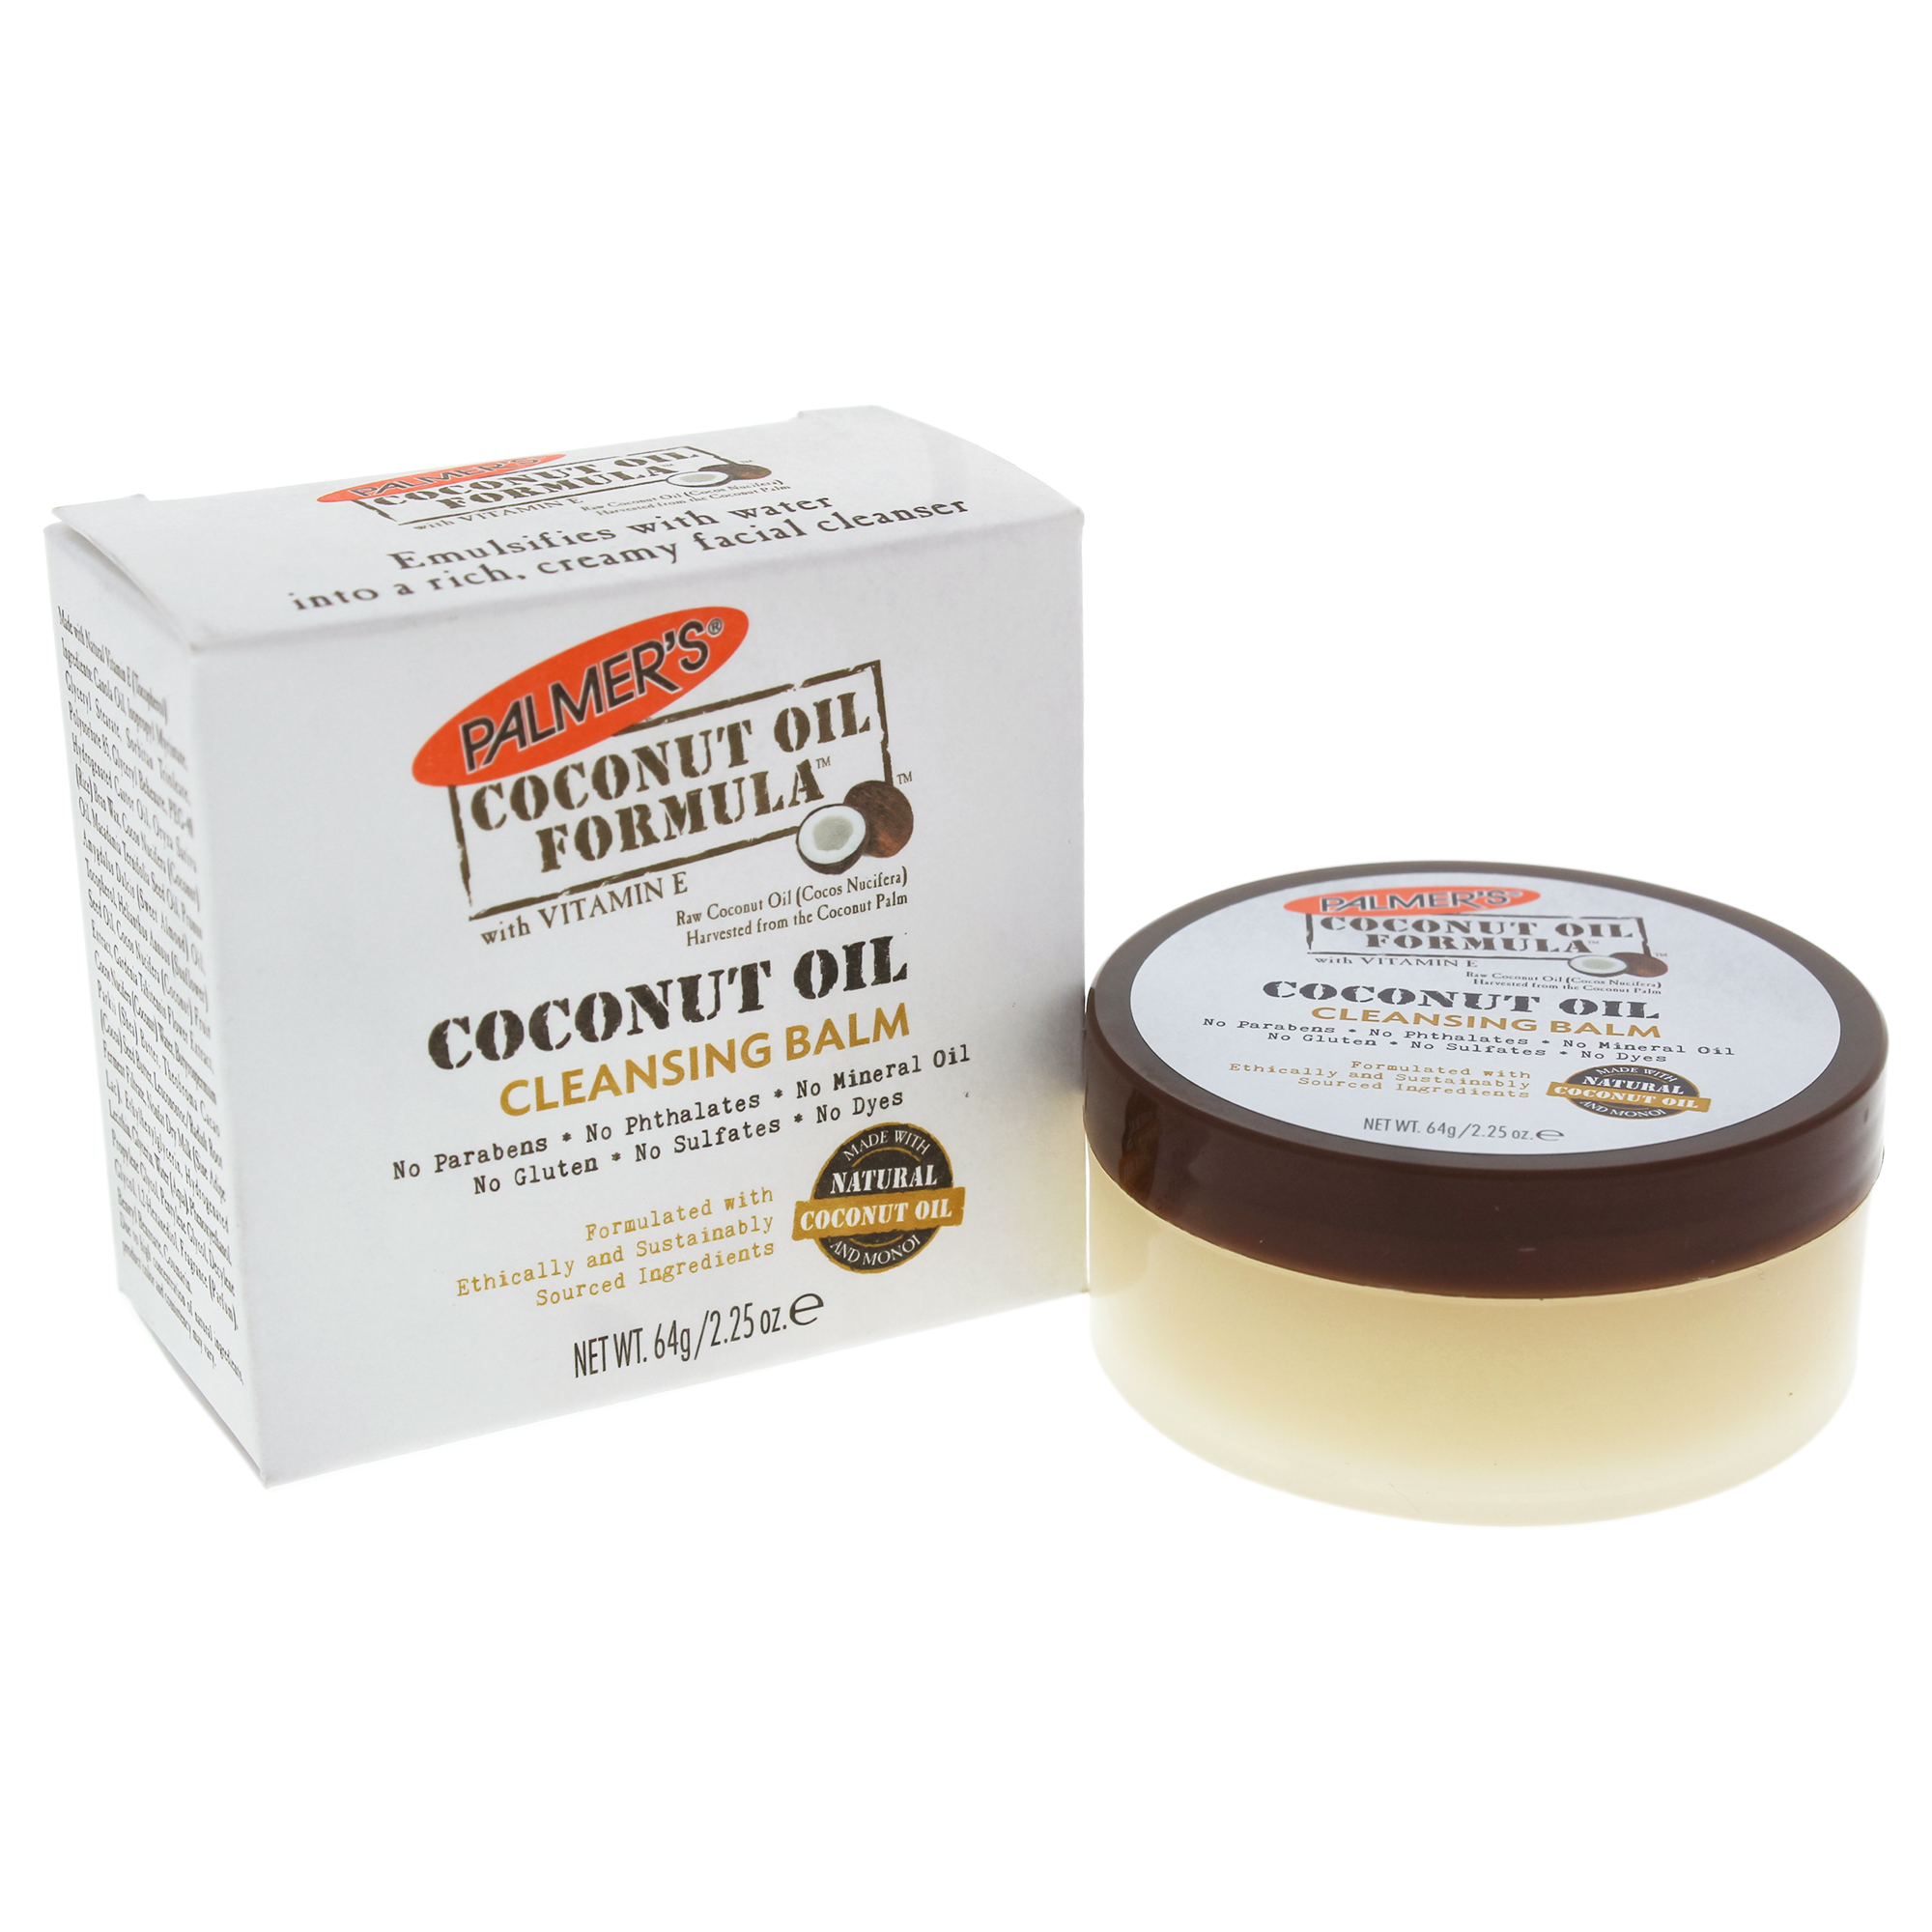 Coconut Oil Cleansing Balm by Palmers for Unisex - 2.25 oz Cleanser